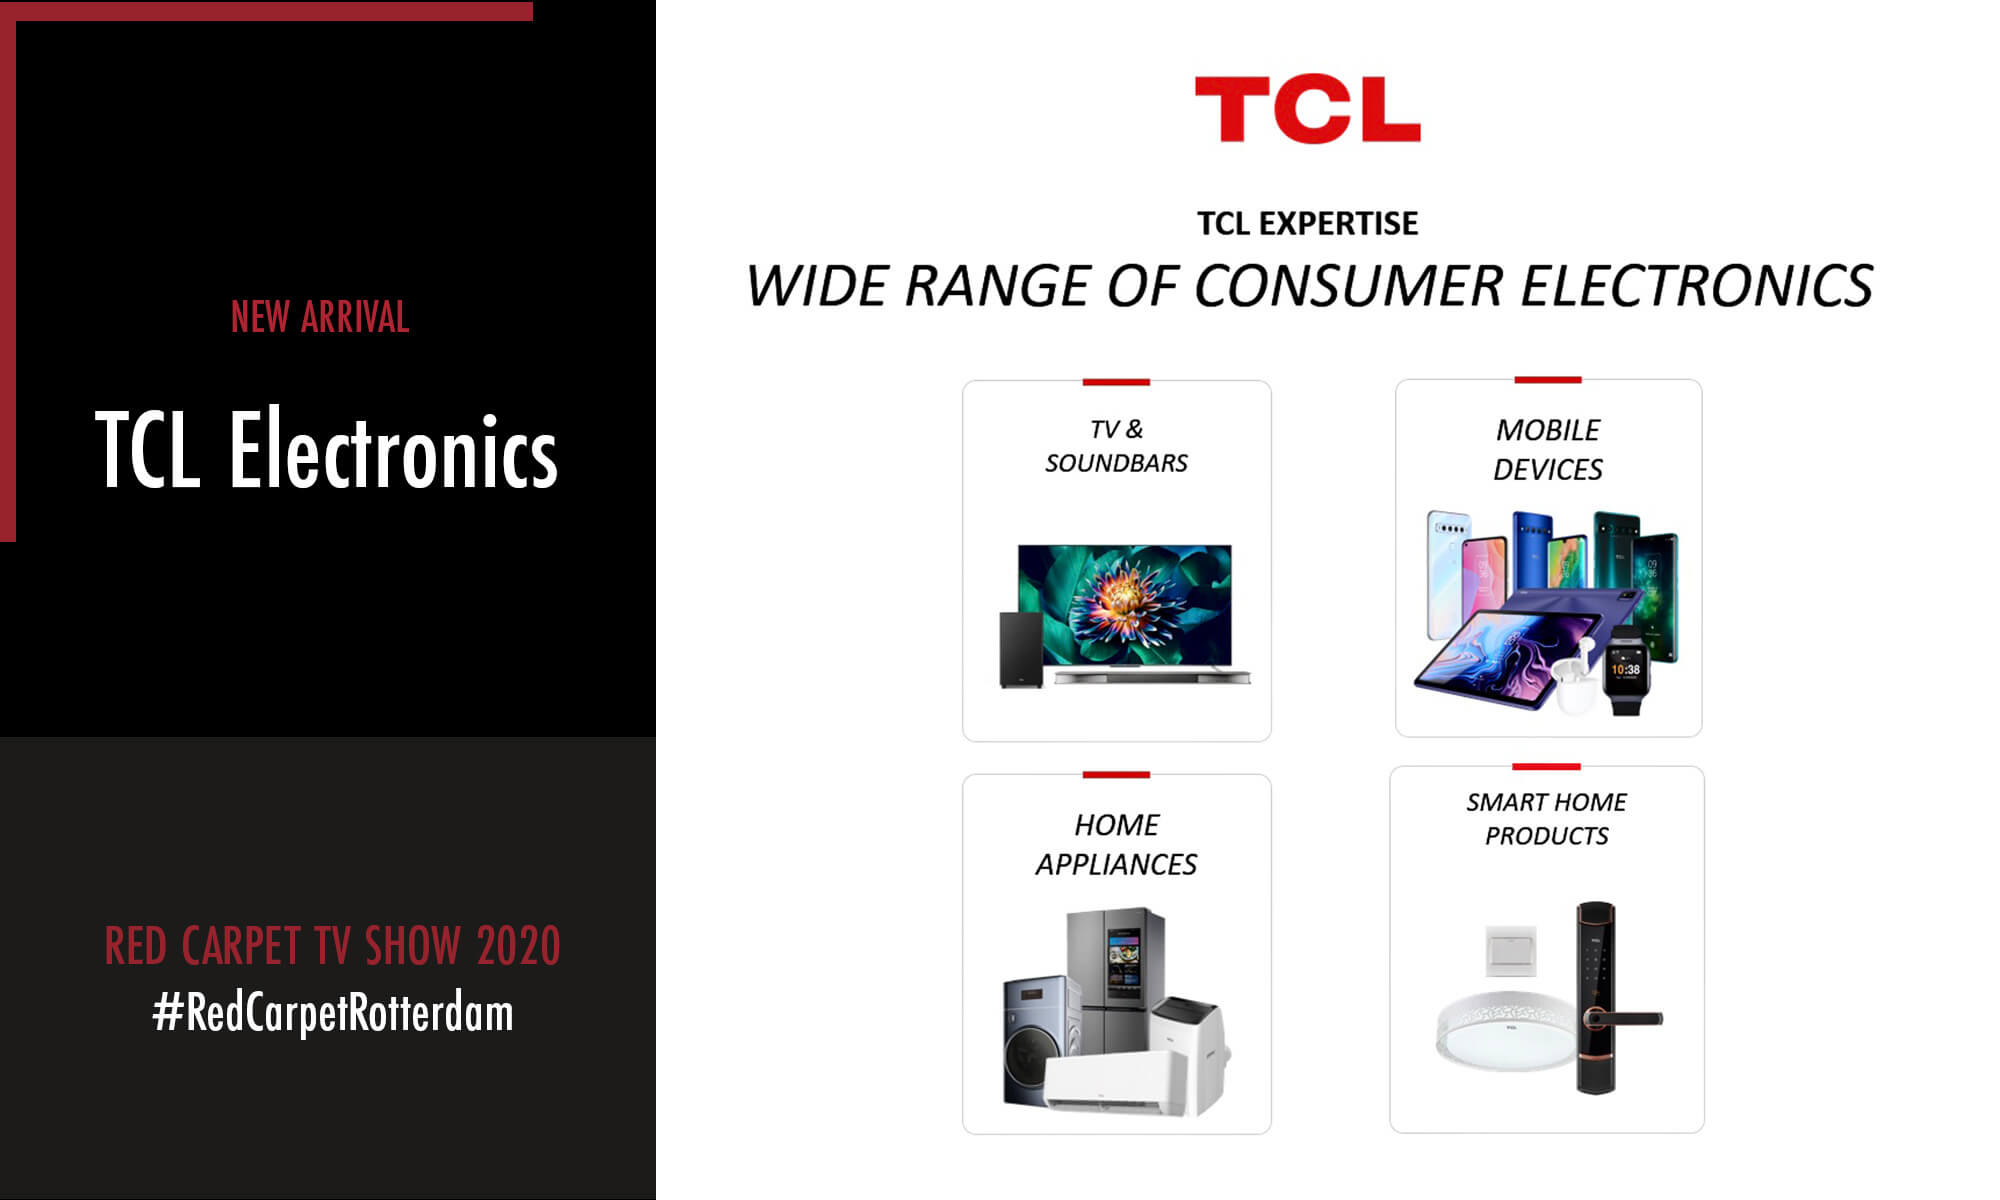 TCL Electronics is one of the new arrivals participating in the Red Carpet TV Show 2020